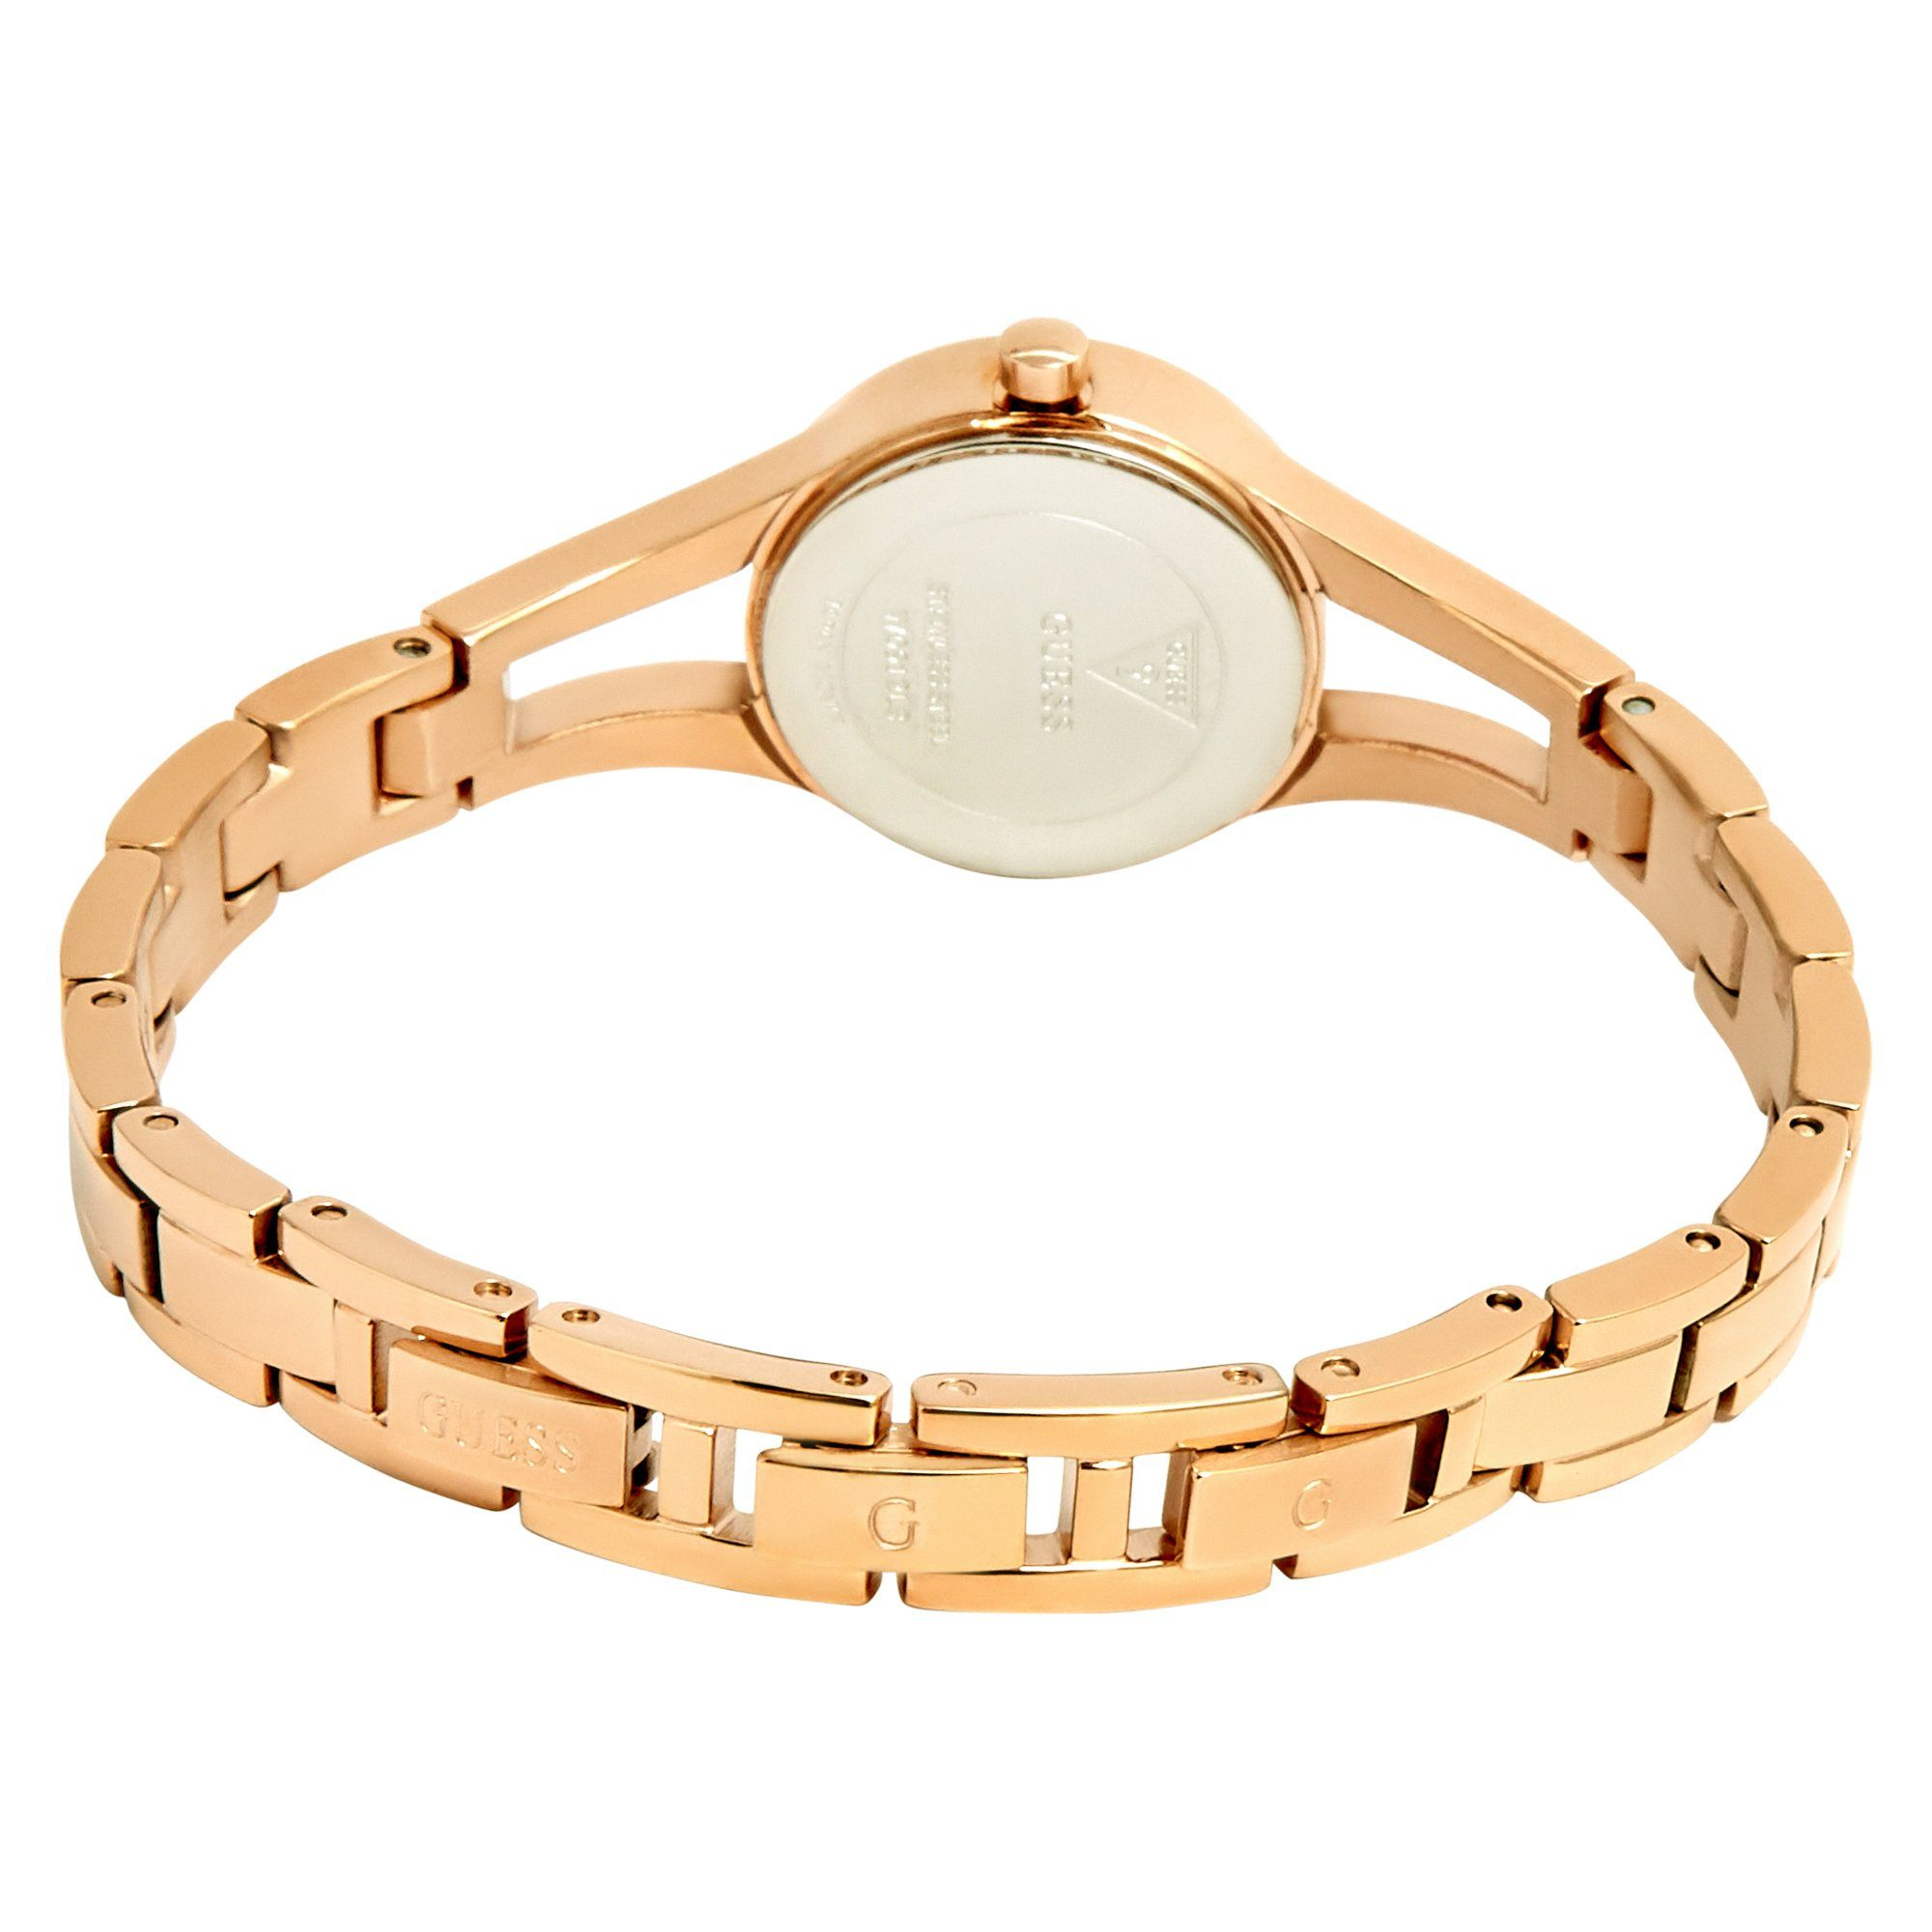 Guess Evie Rose Gold Bracelet Watch Watches Isbister & Co Wholesale